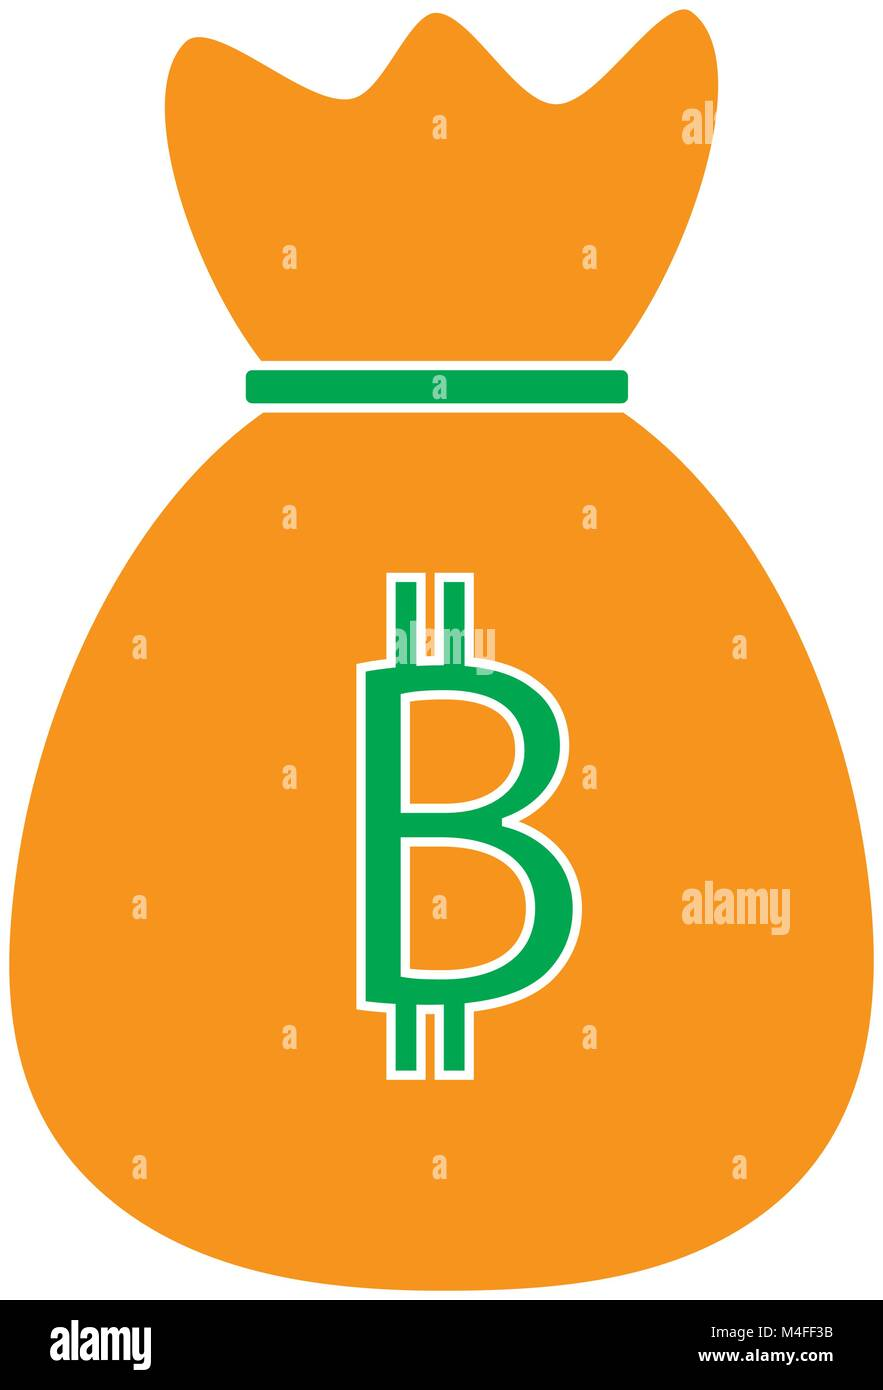 Bitcoin crypto currency icon or logo vector over a money bag bitcoin crypto currency icon or logo vector over a money bag symbol for bank or banking on a digital economy with virtual cash and currencies used f biocorpaavc Gallery